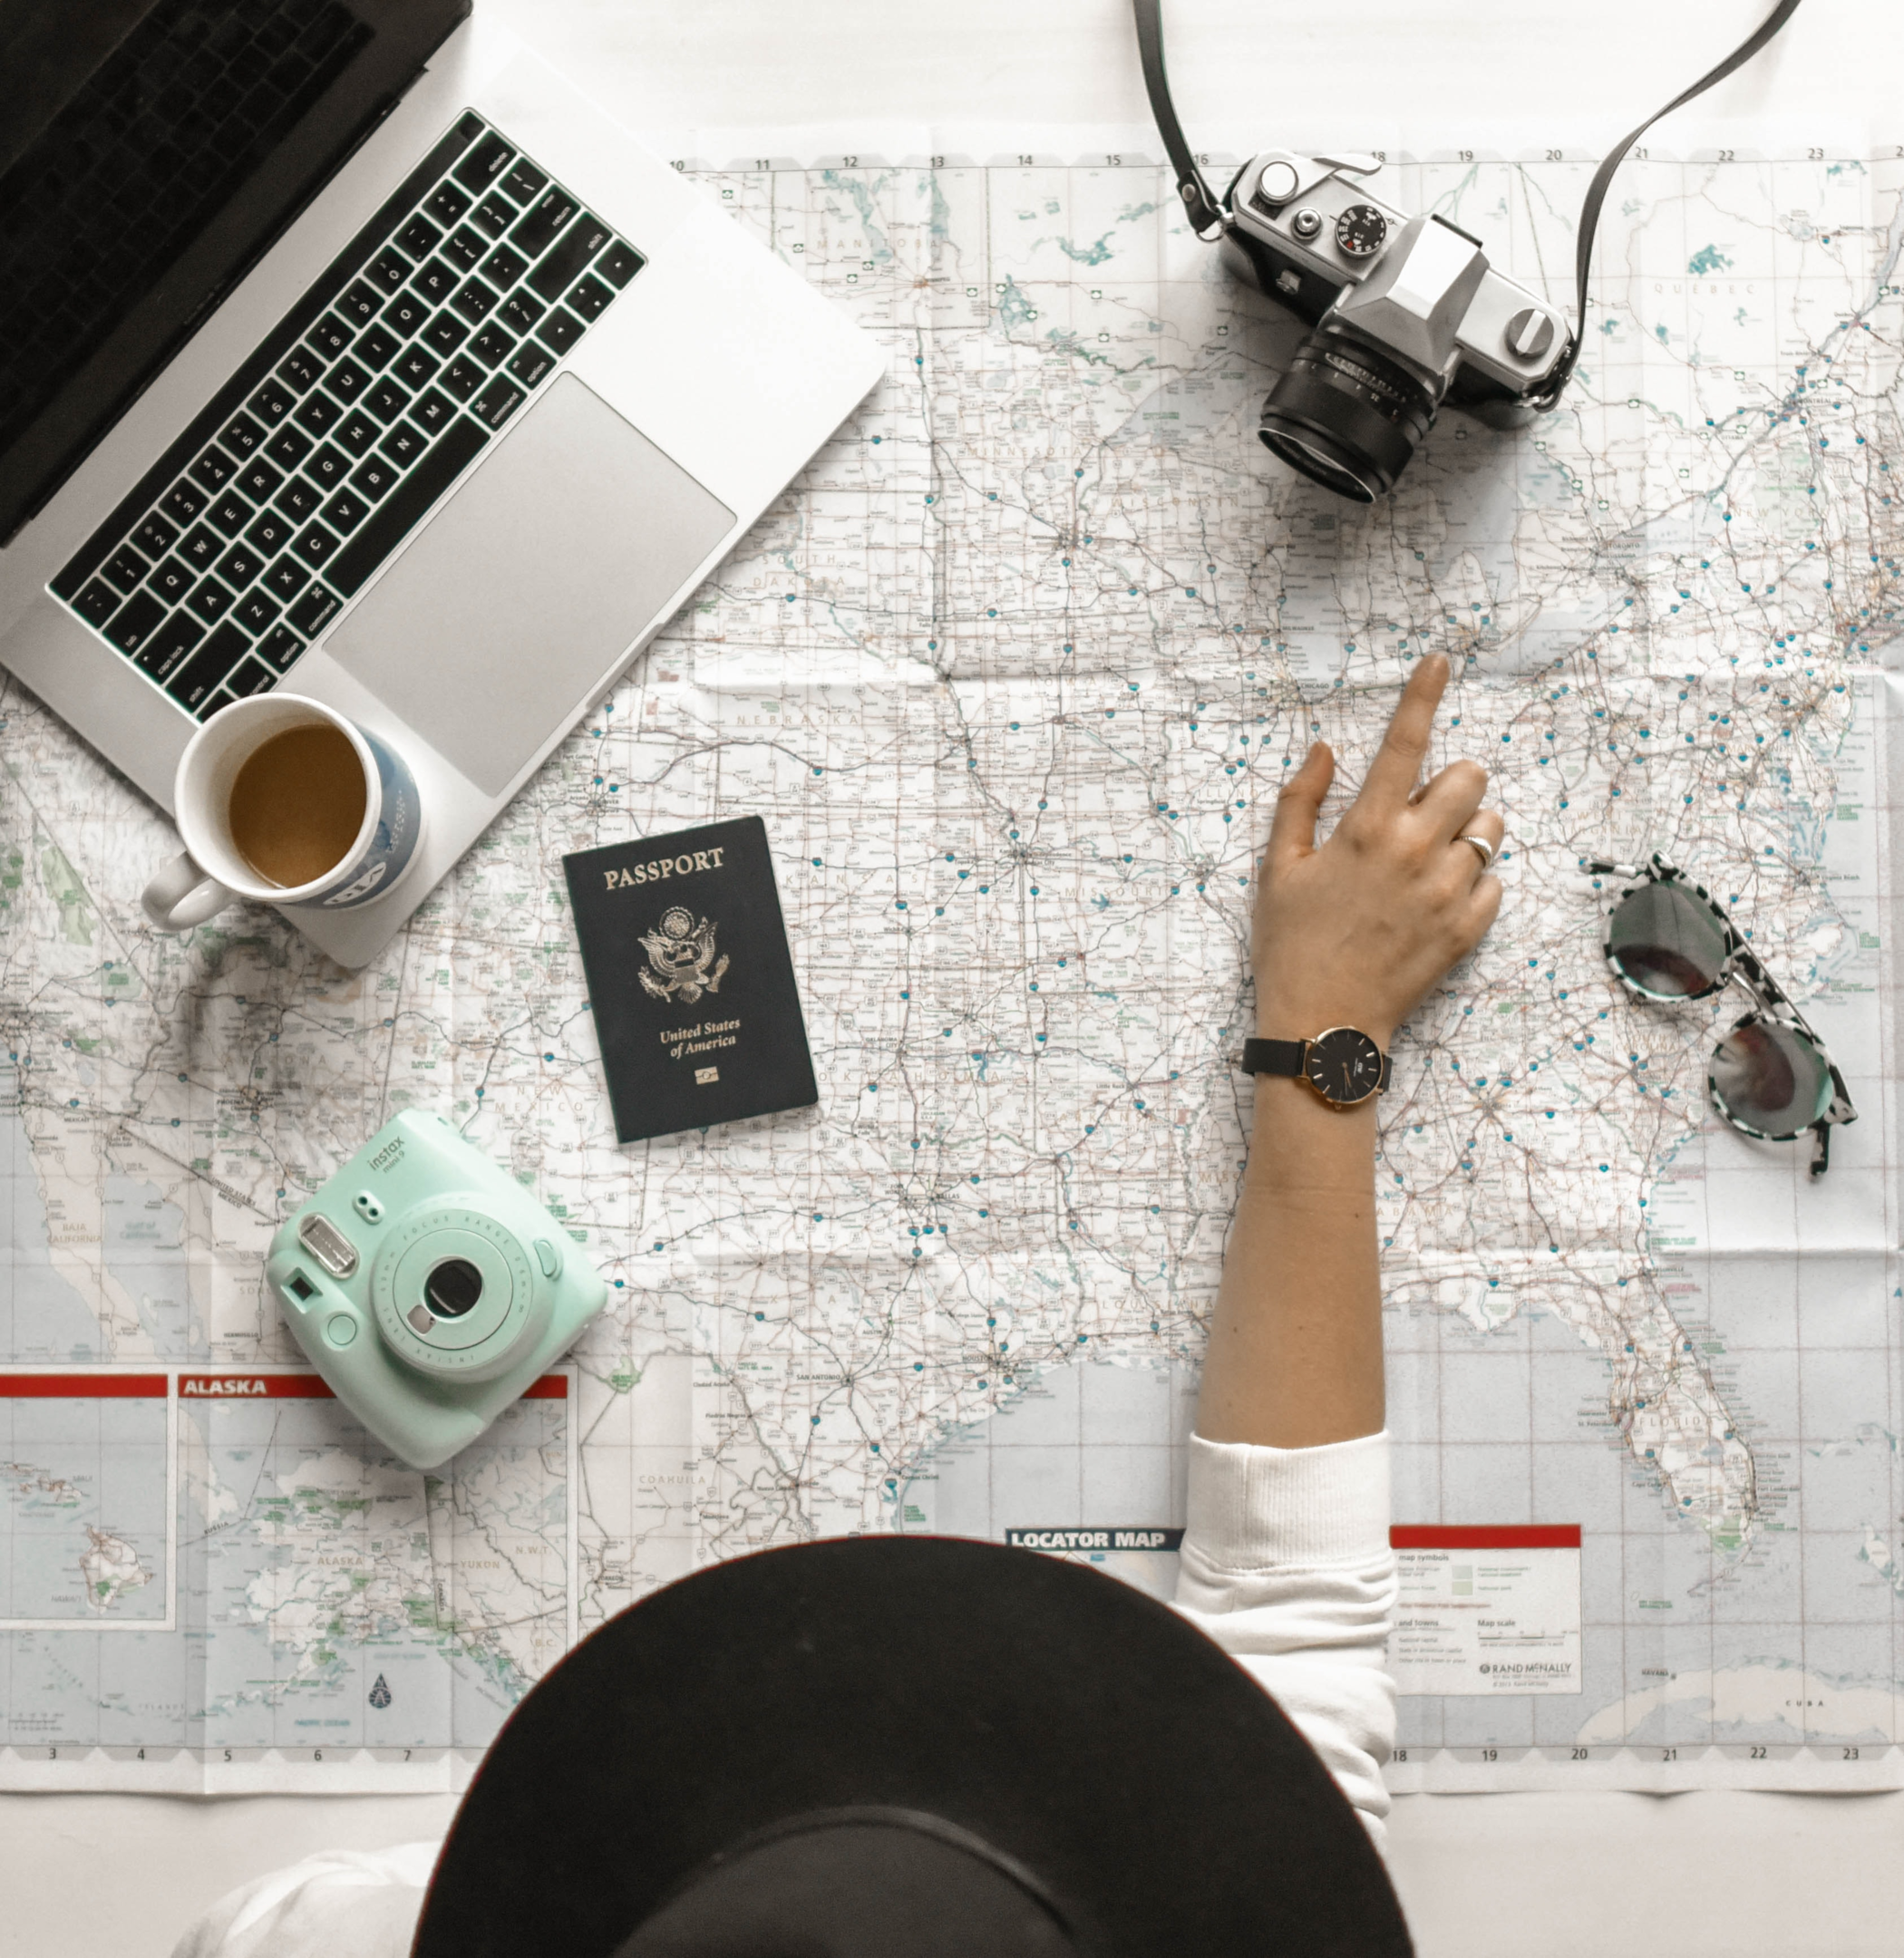 Budgeting and travel costs